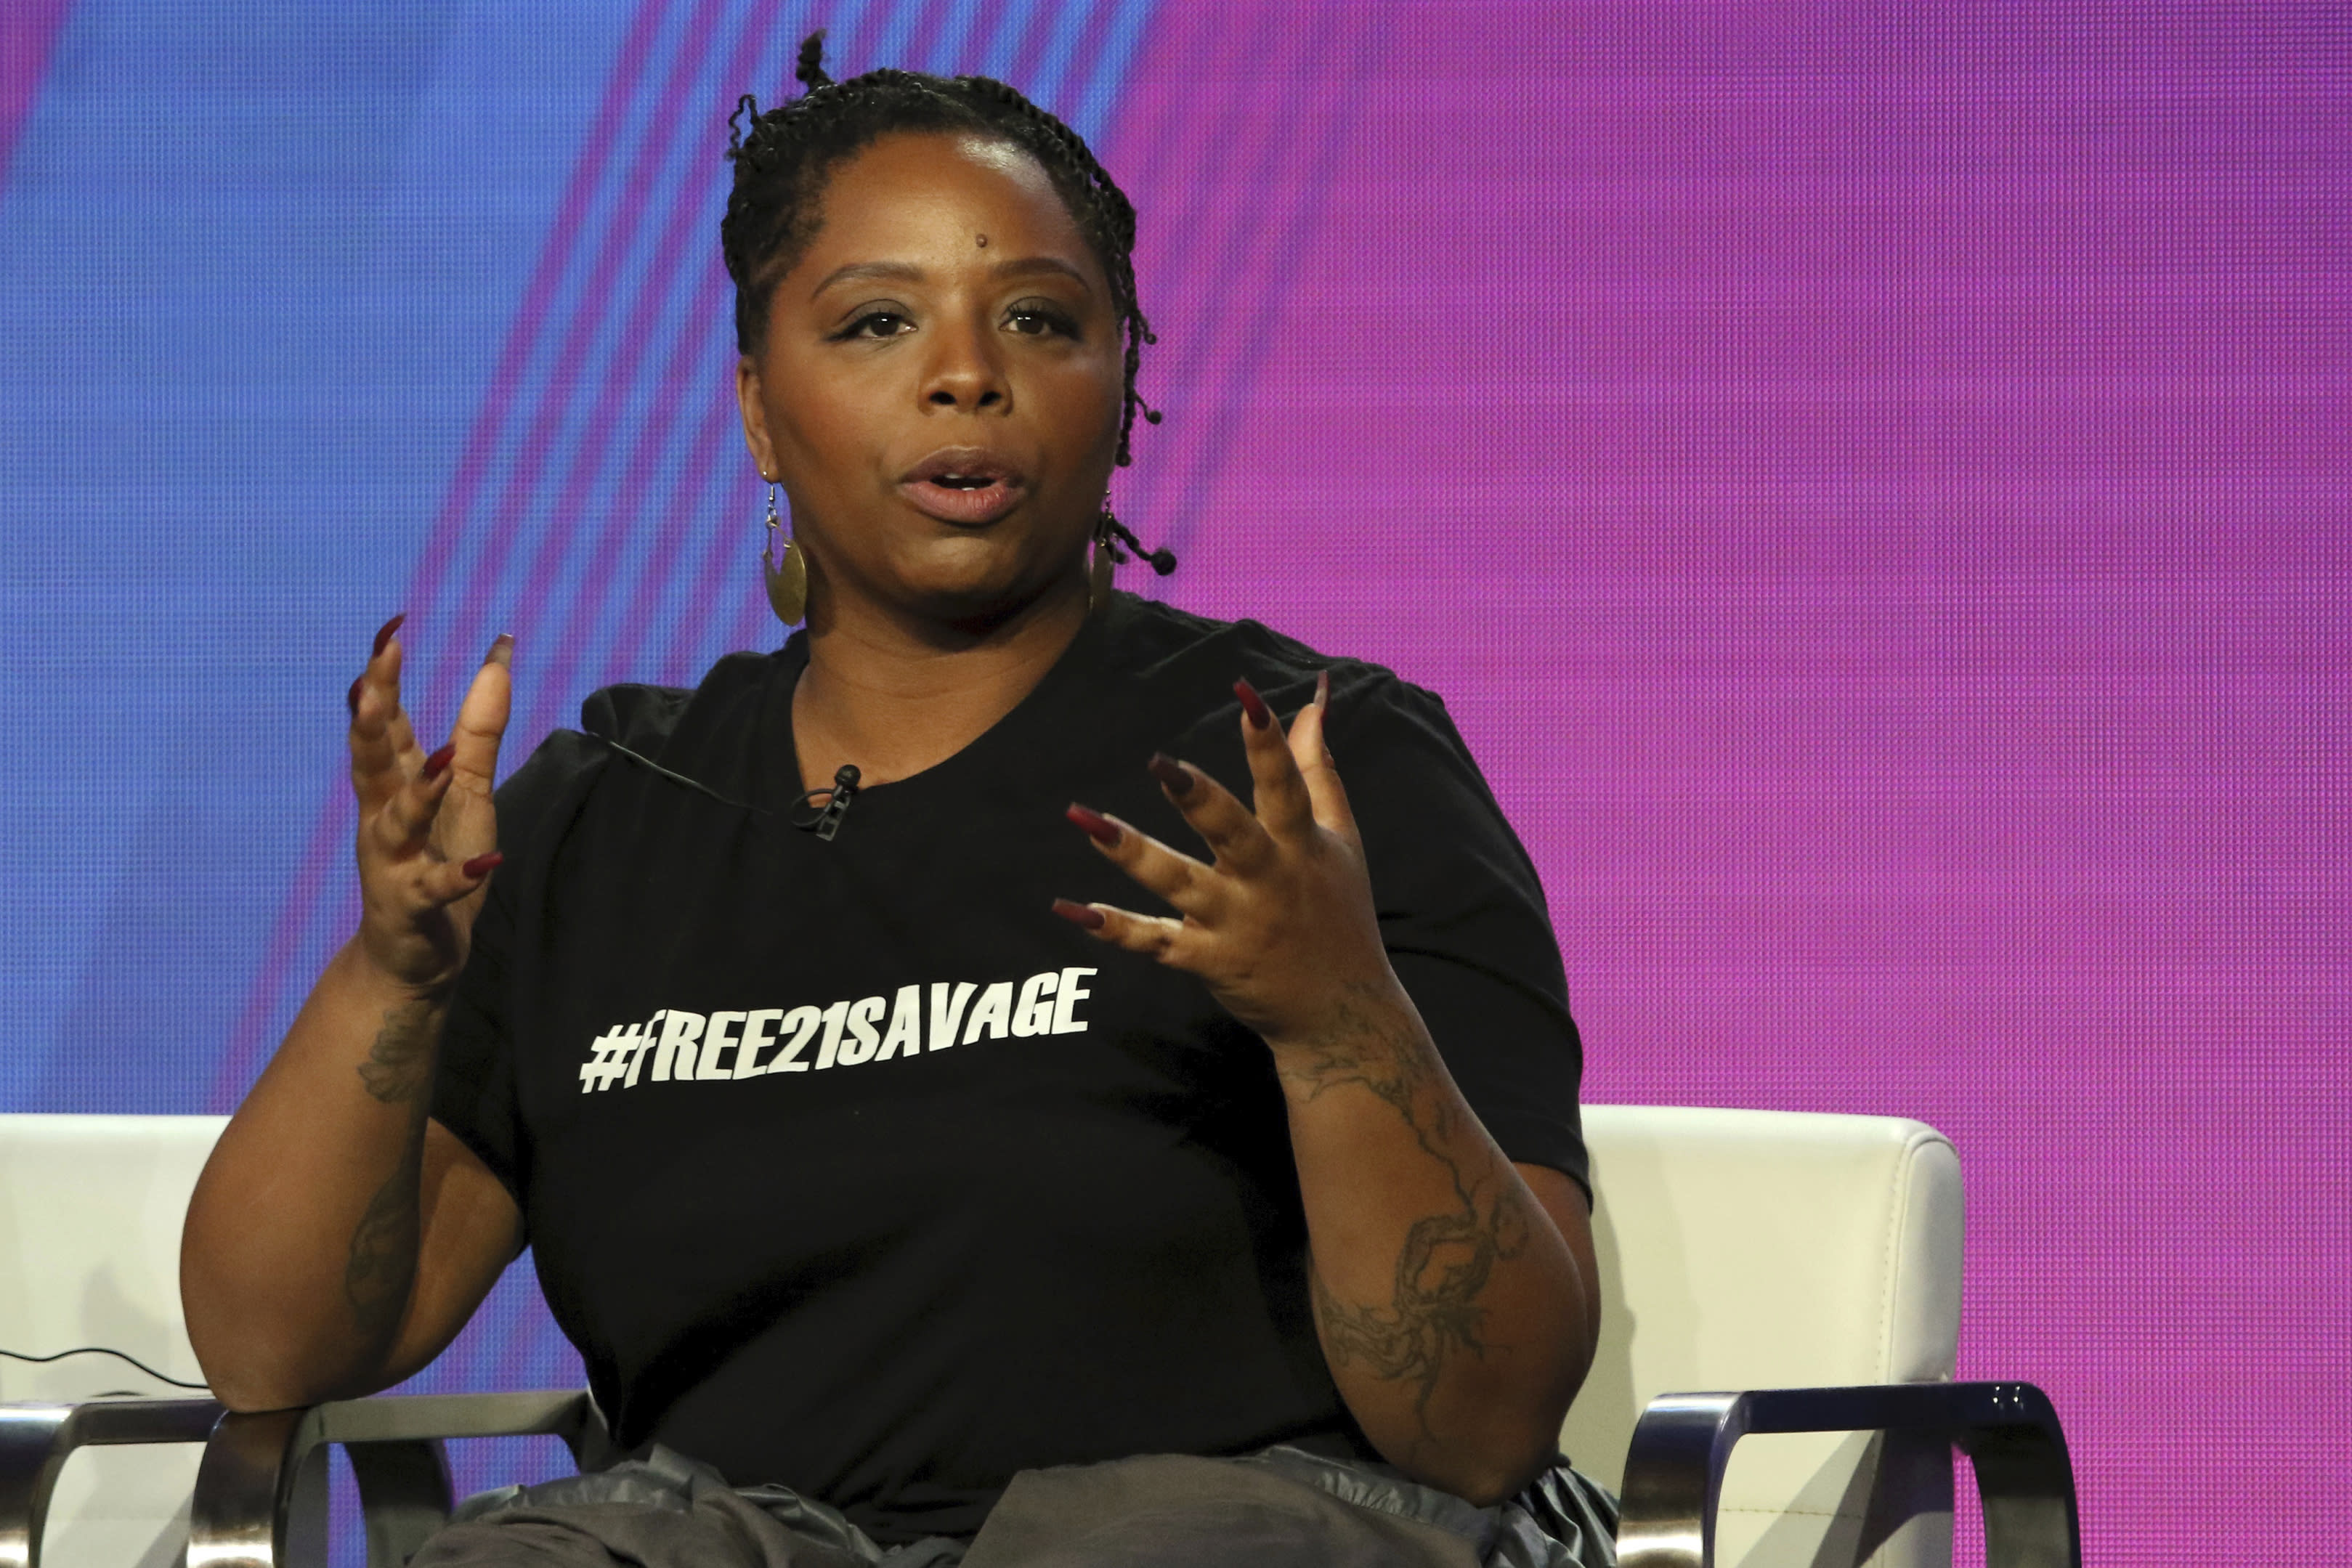 """FILE - In this Feb. 11, 2019, file photo, Patrisse Cullors, Black Lives Matter co-founder, participates in the """"Finding Justice"""" panel during the BET presentation at the Television Critics Association Winter Press Tour at The Langham Huntington in Pasadena, Calif. Proposed federal legislation that would radically transform the nation's criminal justice system through such changes as eliminating agencies like the Drug Enforcement Administration and the use of federal surveillance technology is set to be unveiled Tuesday, July 7, 2020, by the Movement for Black Lives. """"We stand on the shoulders of giants and there has been 400 years of work that Black people have done to try to get us closer to freedom,"""" Cullors said. (Photo by Willy Sanjuan/Invision/AP, File)"""